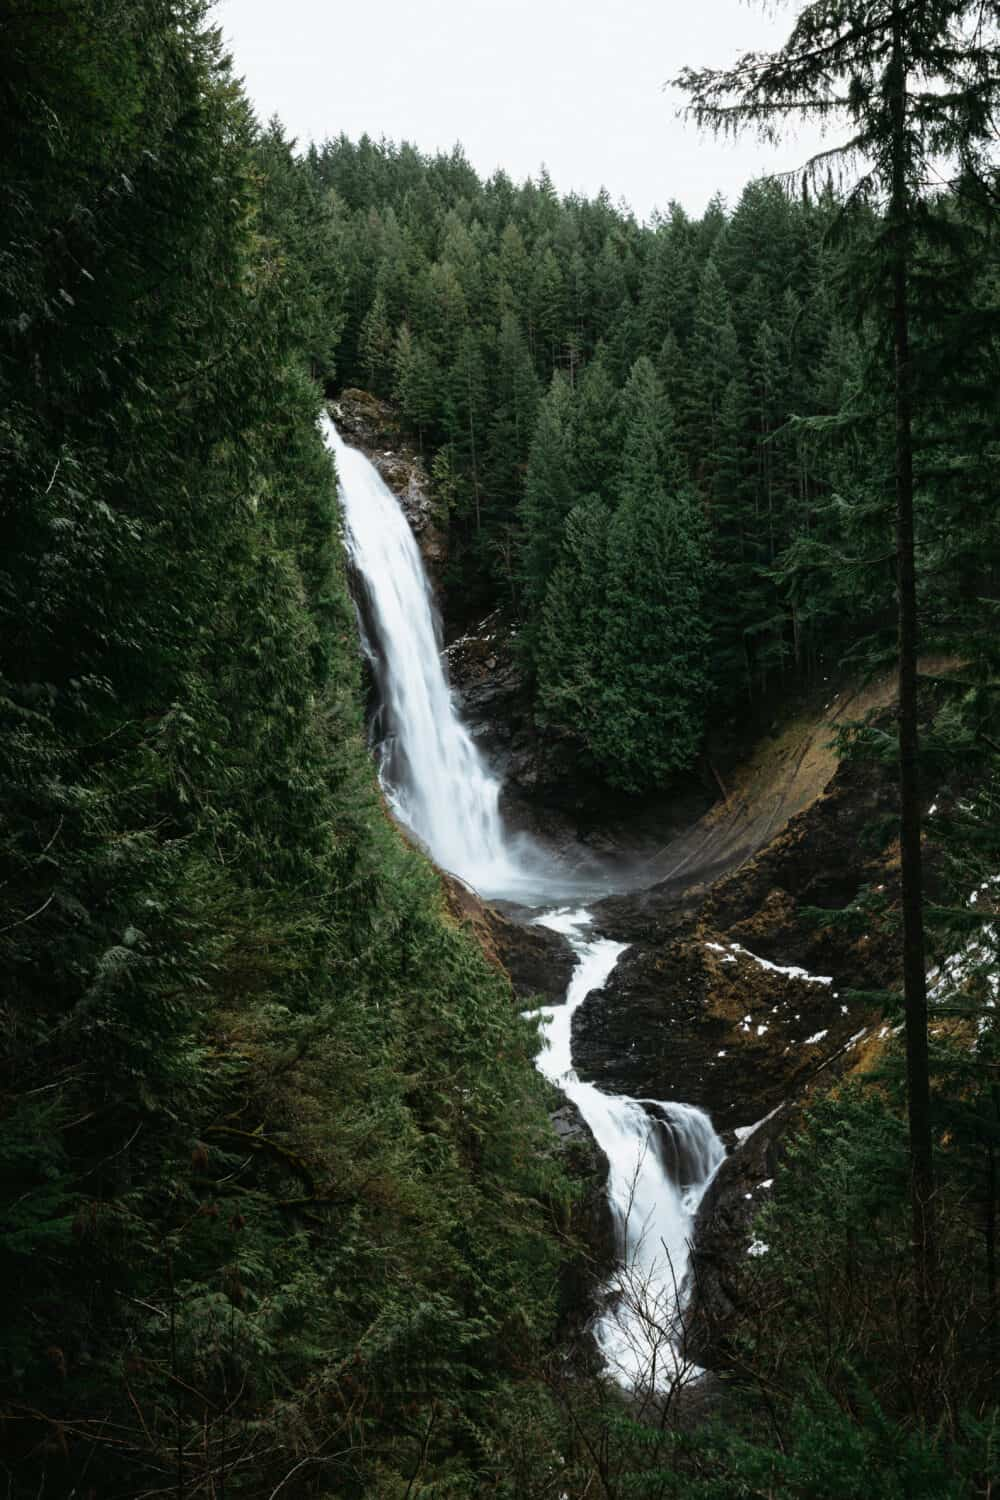 Wallace Falls Waterfall - Hiking Near Seattle, Washington - TheMandagies.com